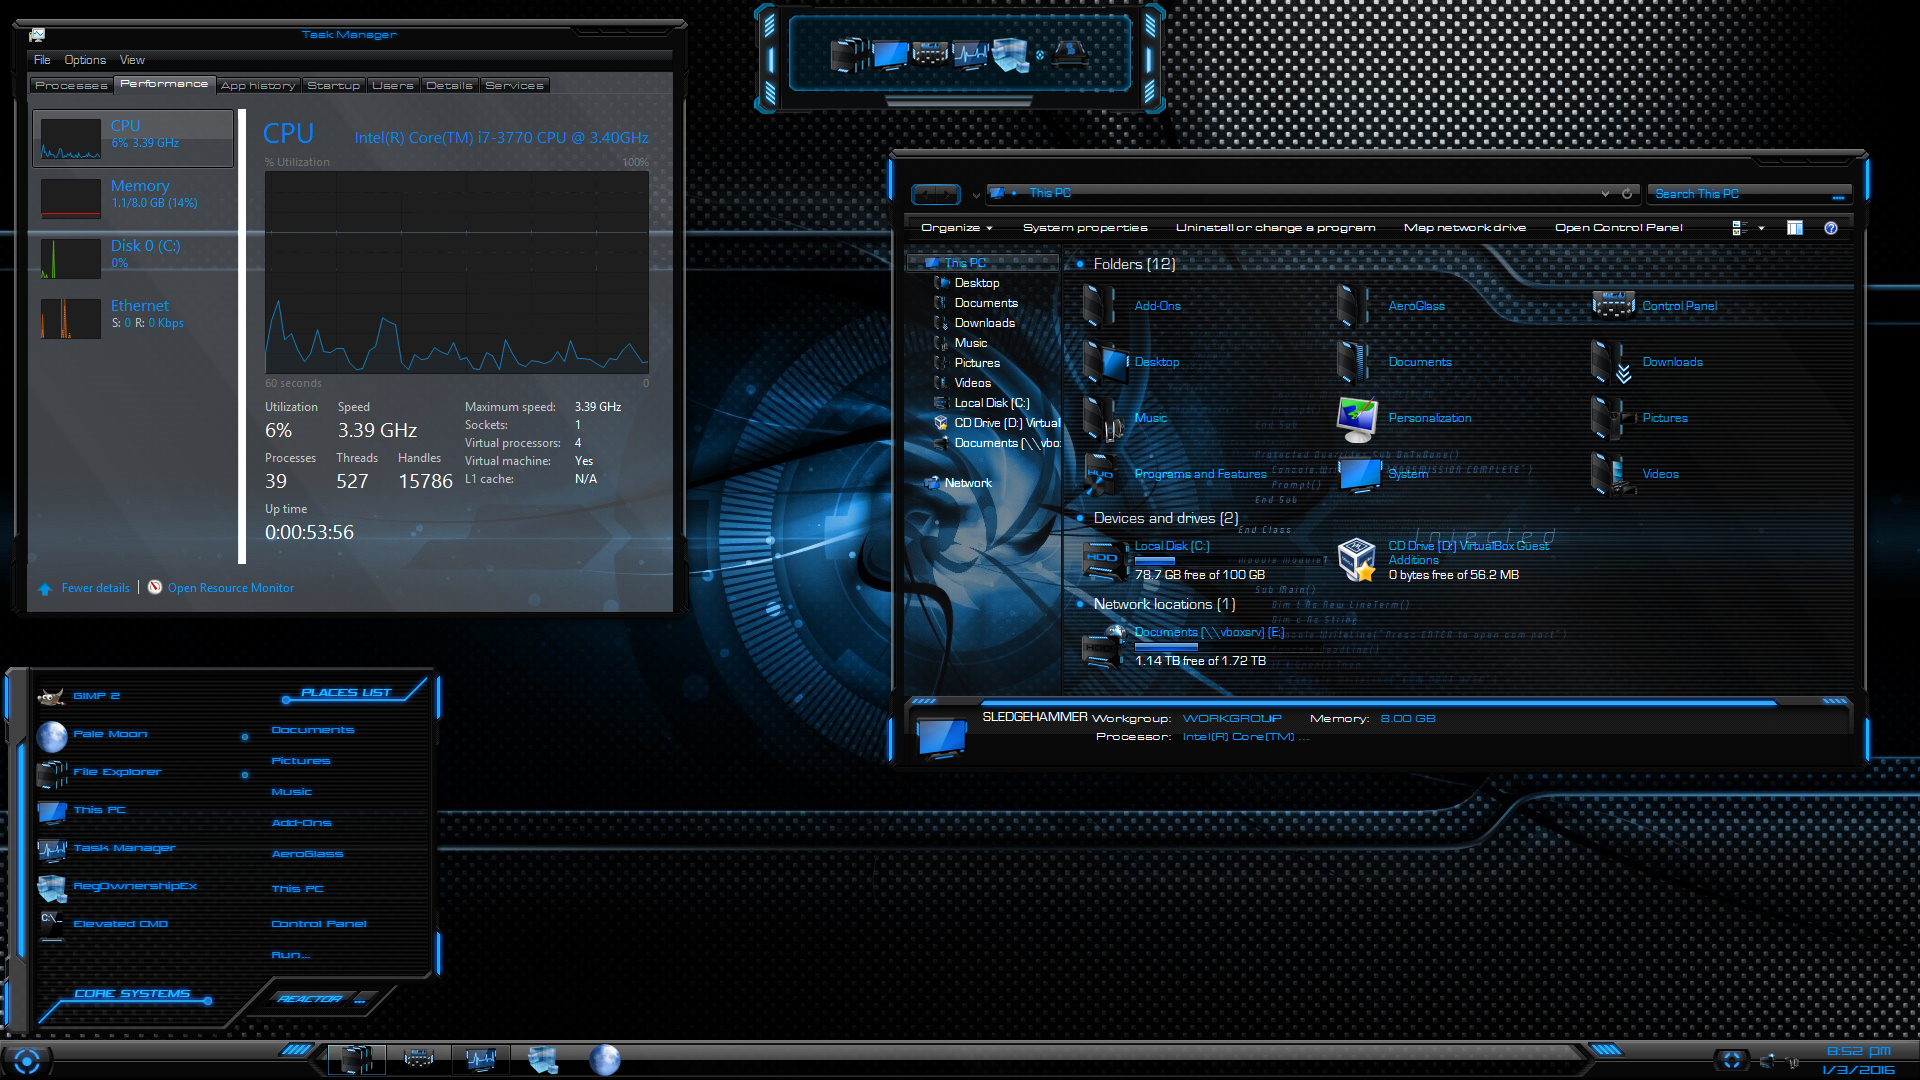 9 Awesome Skin Packs for Windows 7